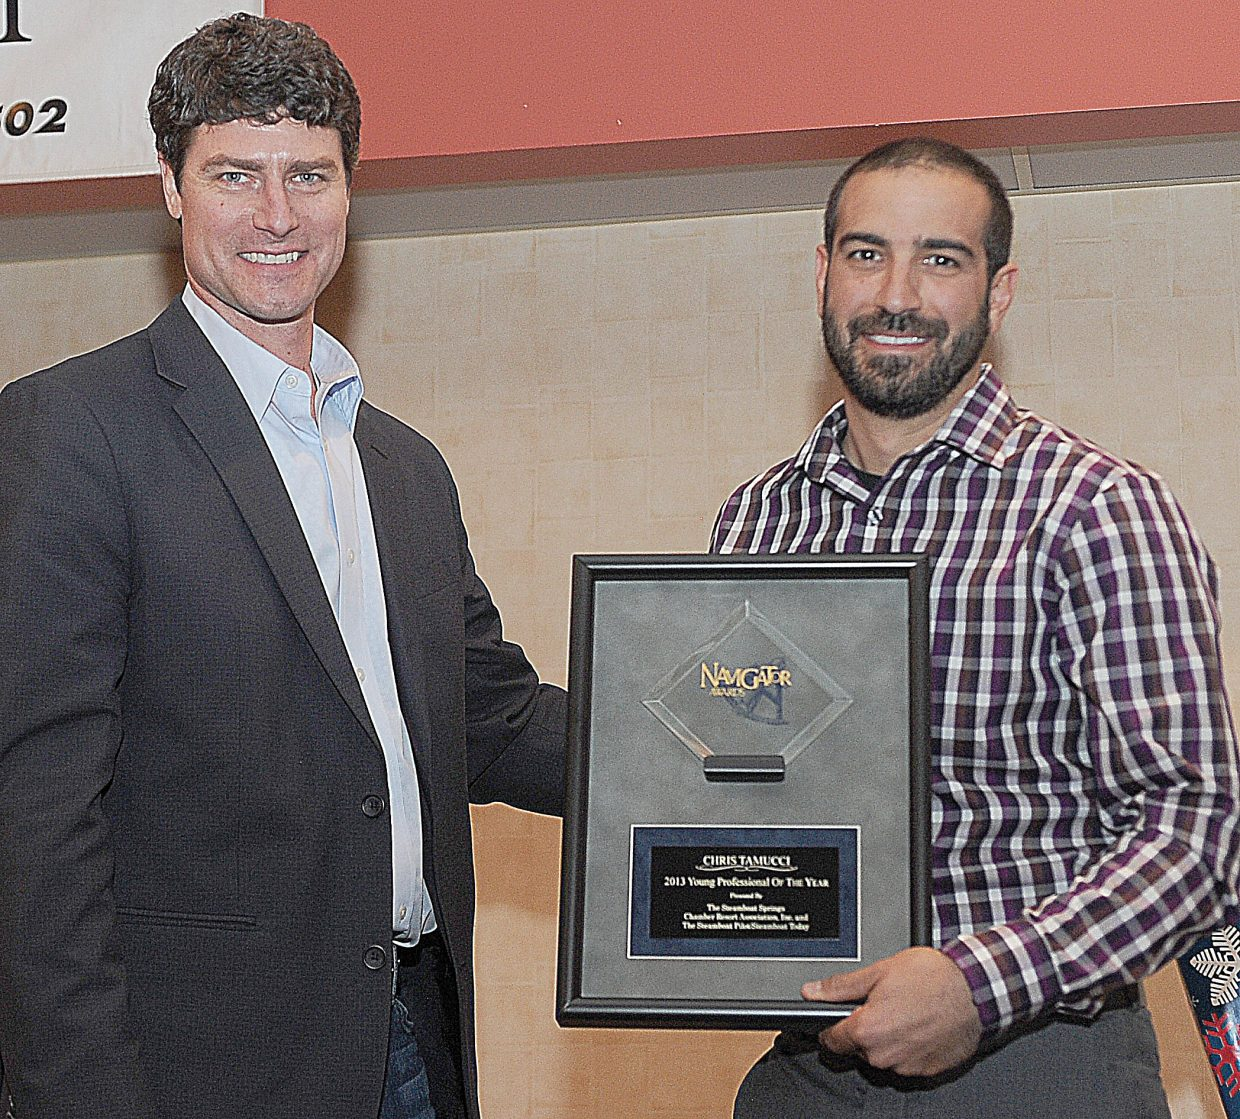 Kerry Shea, the new president of the Steamboat Springs Chamber Resort Association, stands with Chris Tamucci, director of operations for Big Agnes, Honey Stinger and BAP. Tamucci was named Young Professional of the Year at the Navigator Awards luncheon.